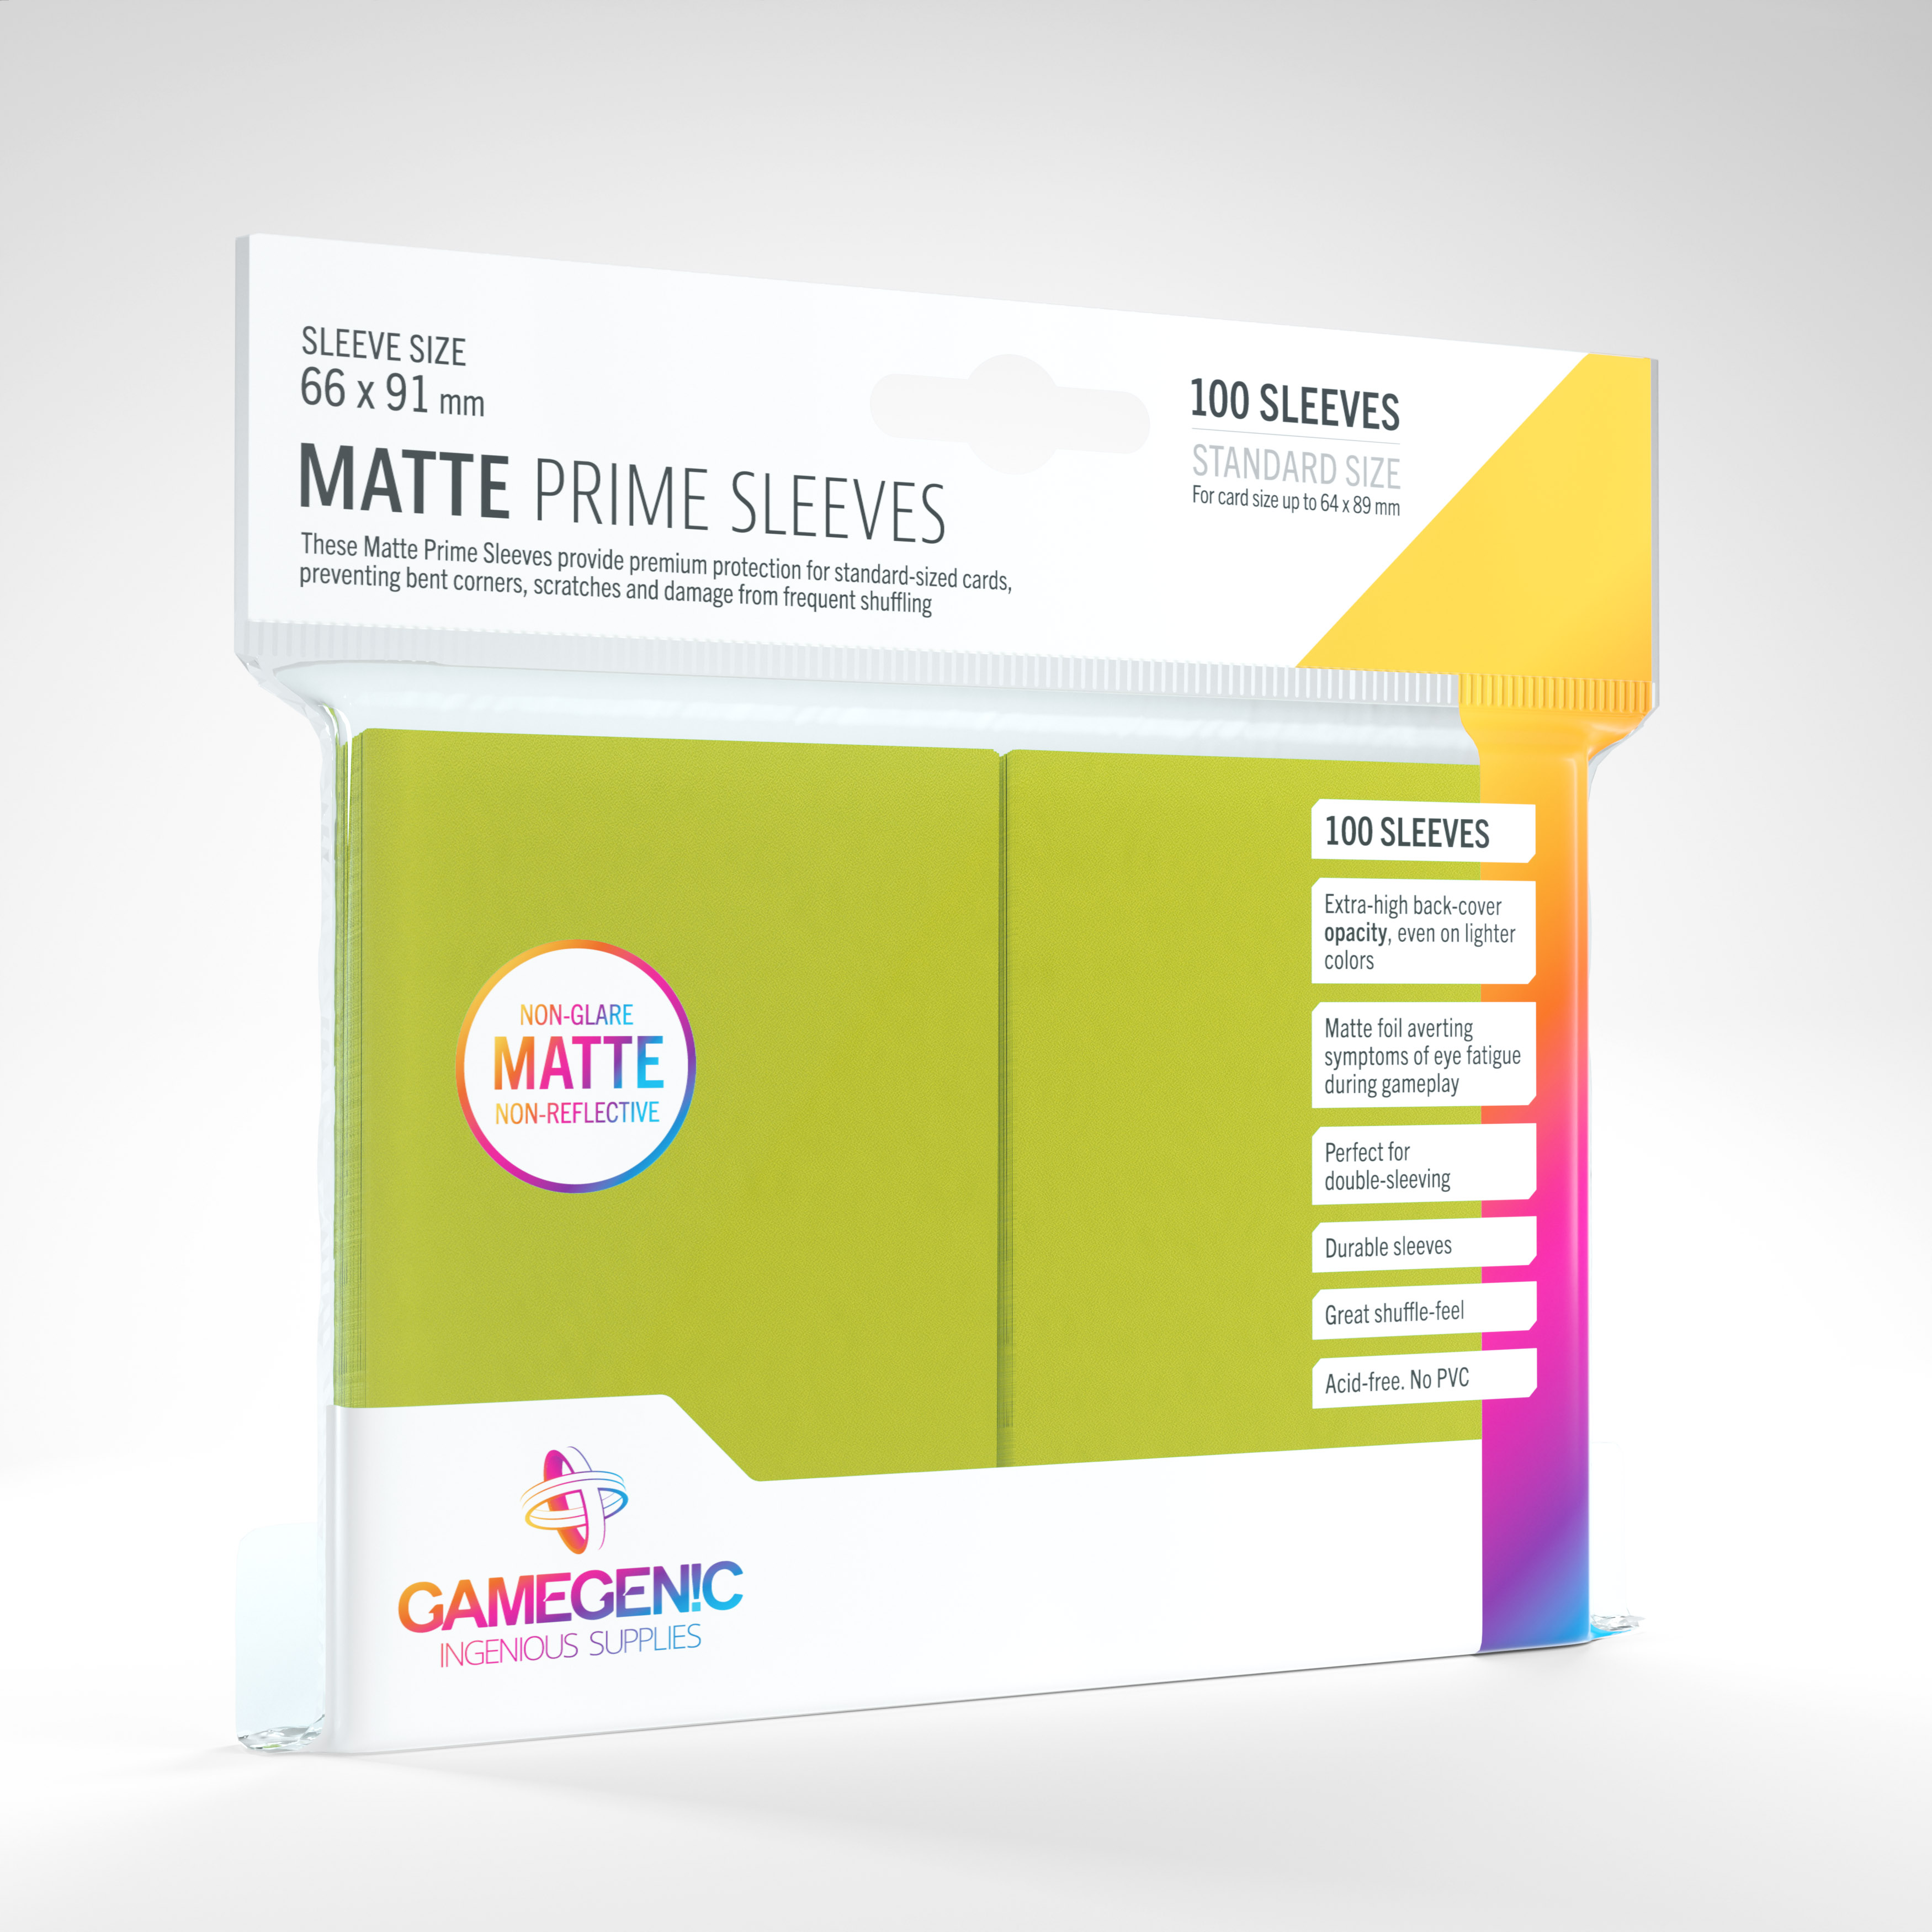 Gamegenic - Sleeves: Gamegenic Matte Prime Sleeves - Lime (100)